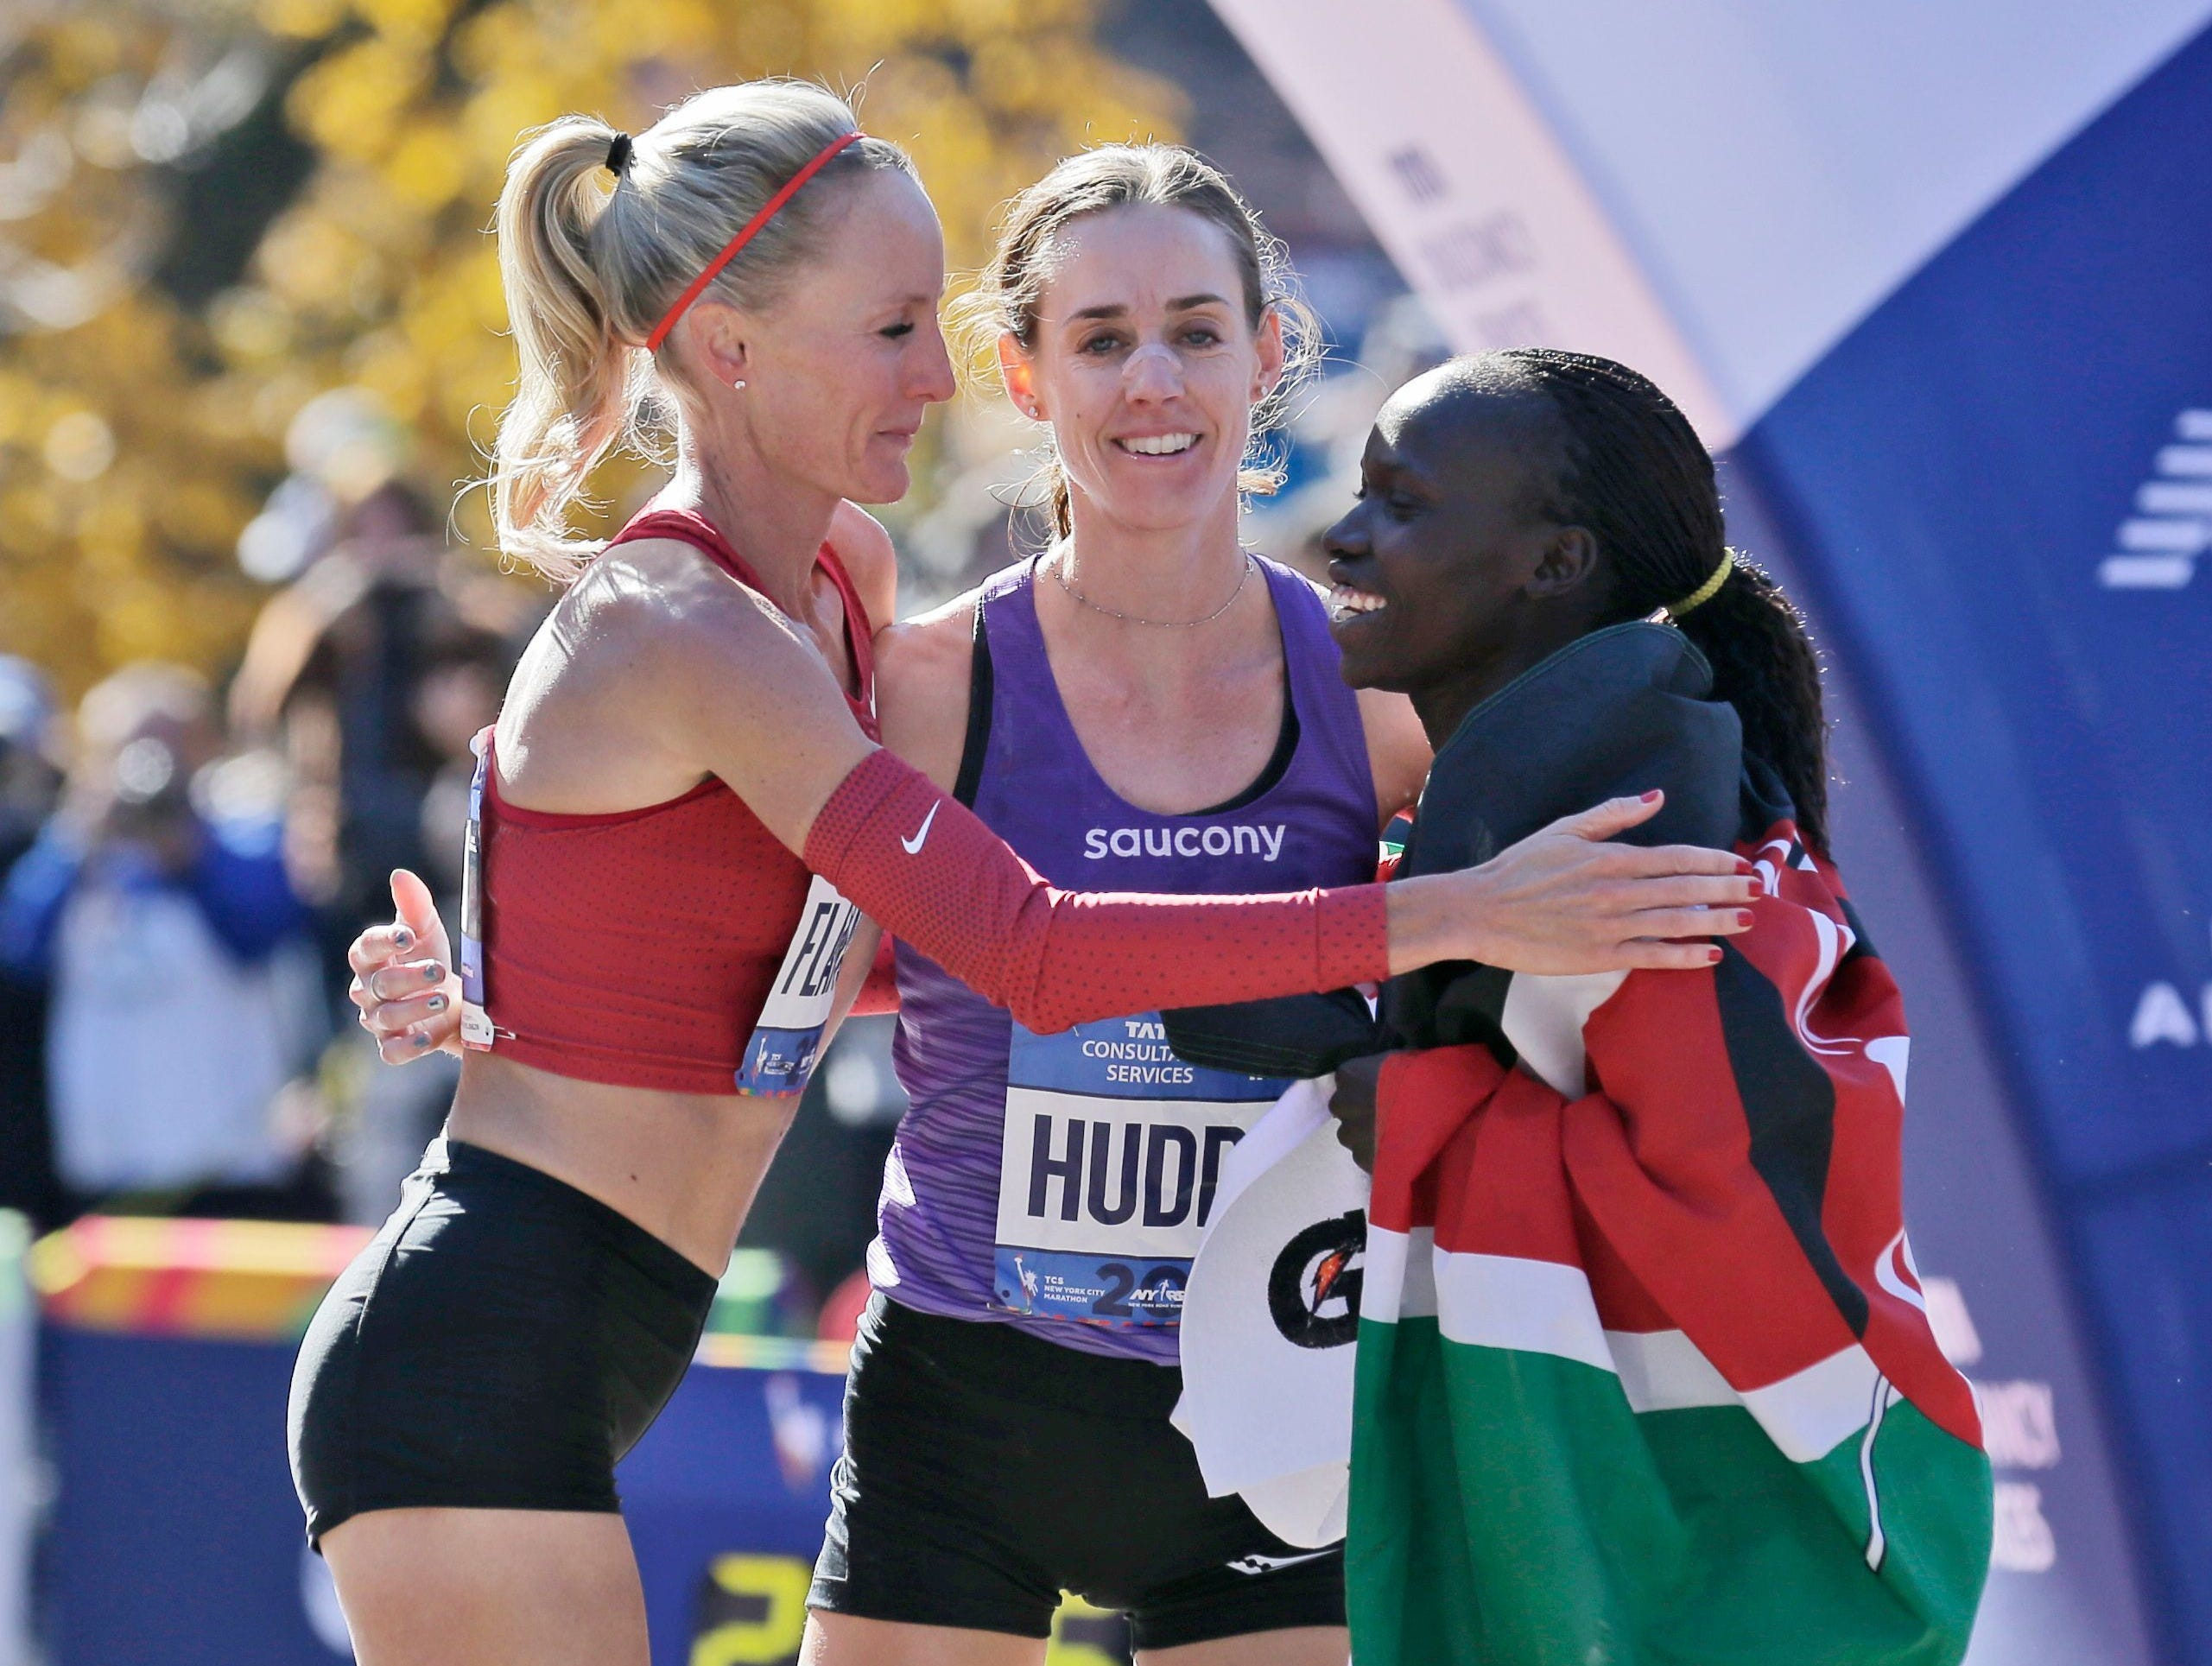 First-place finisher Mary Keitany of Kenya, right, greets American runners Shalane Flanagan, left, and Molly Huddle at the finish line of the New York City Marathon in New York, Sunday, Nov. 4, 2018. Huddle is a native of Elmira, NY.